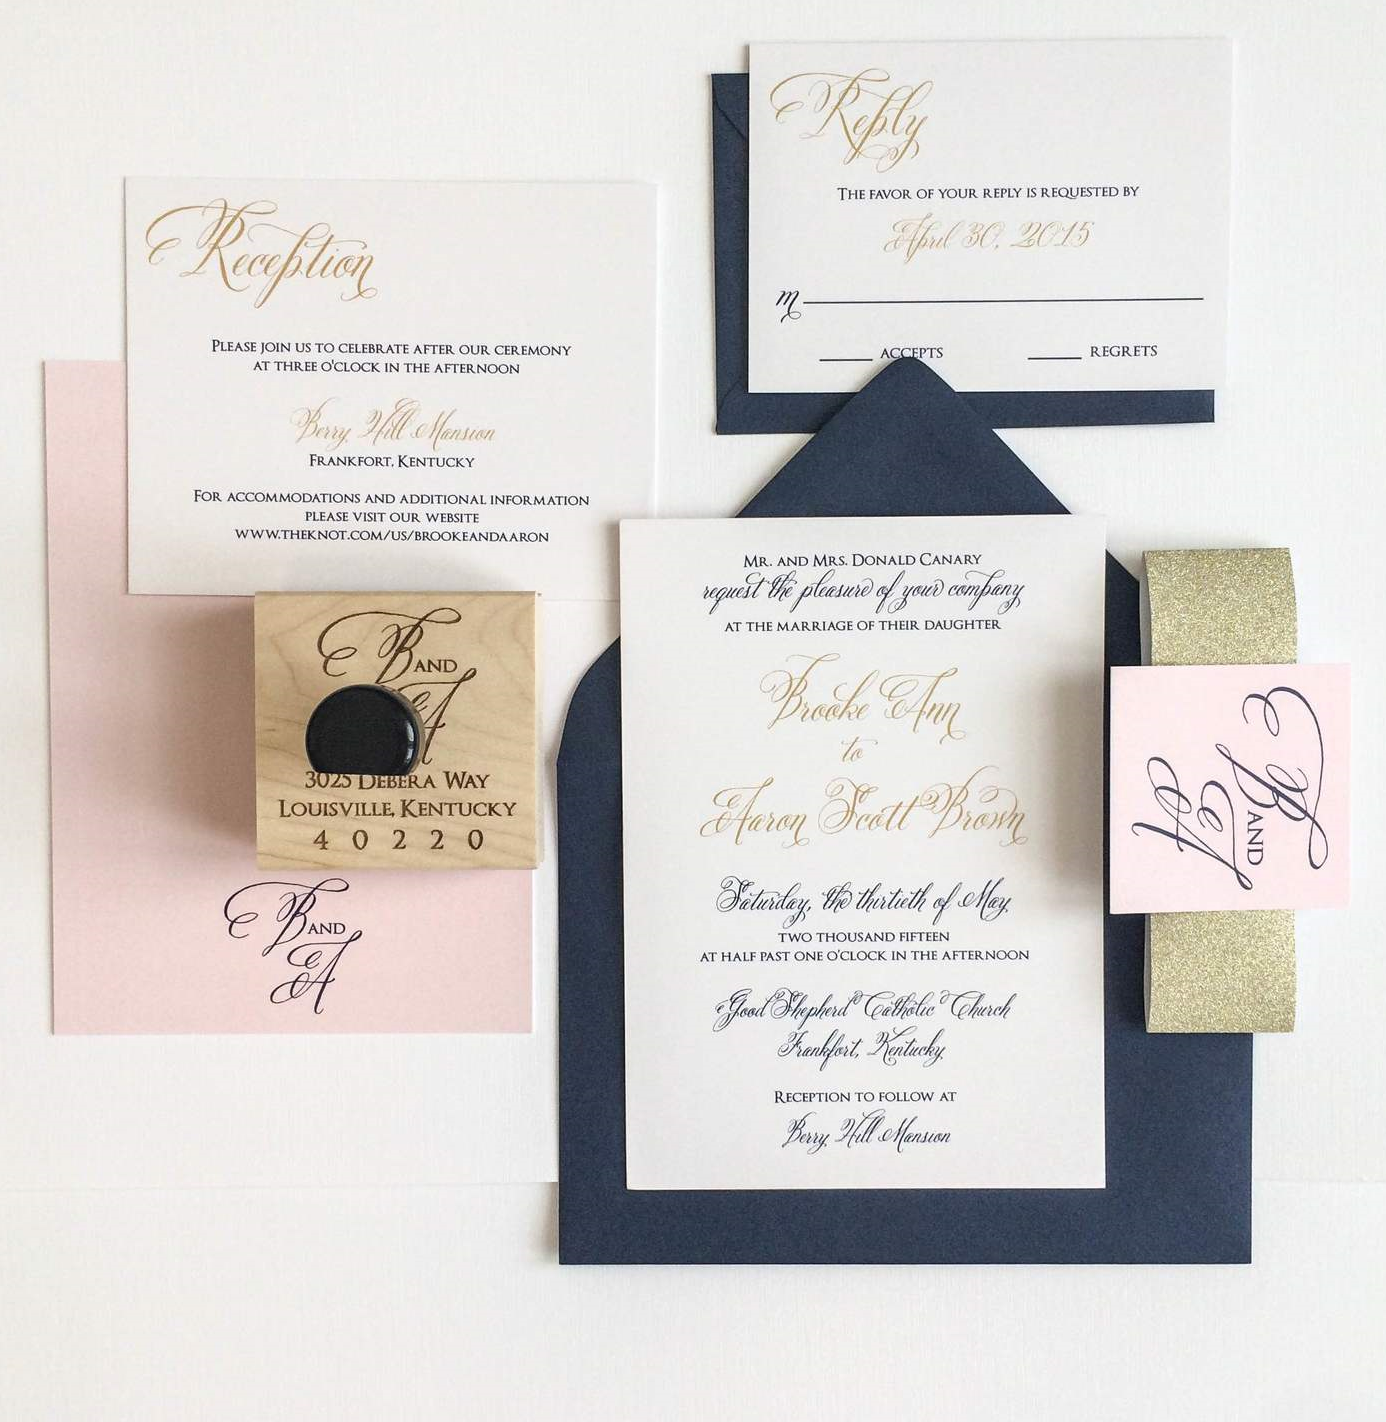 Gold, Navy And Blush Wedding Invitation For A Kentucky